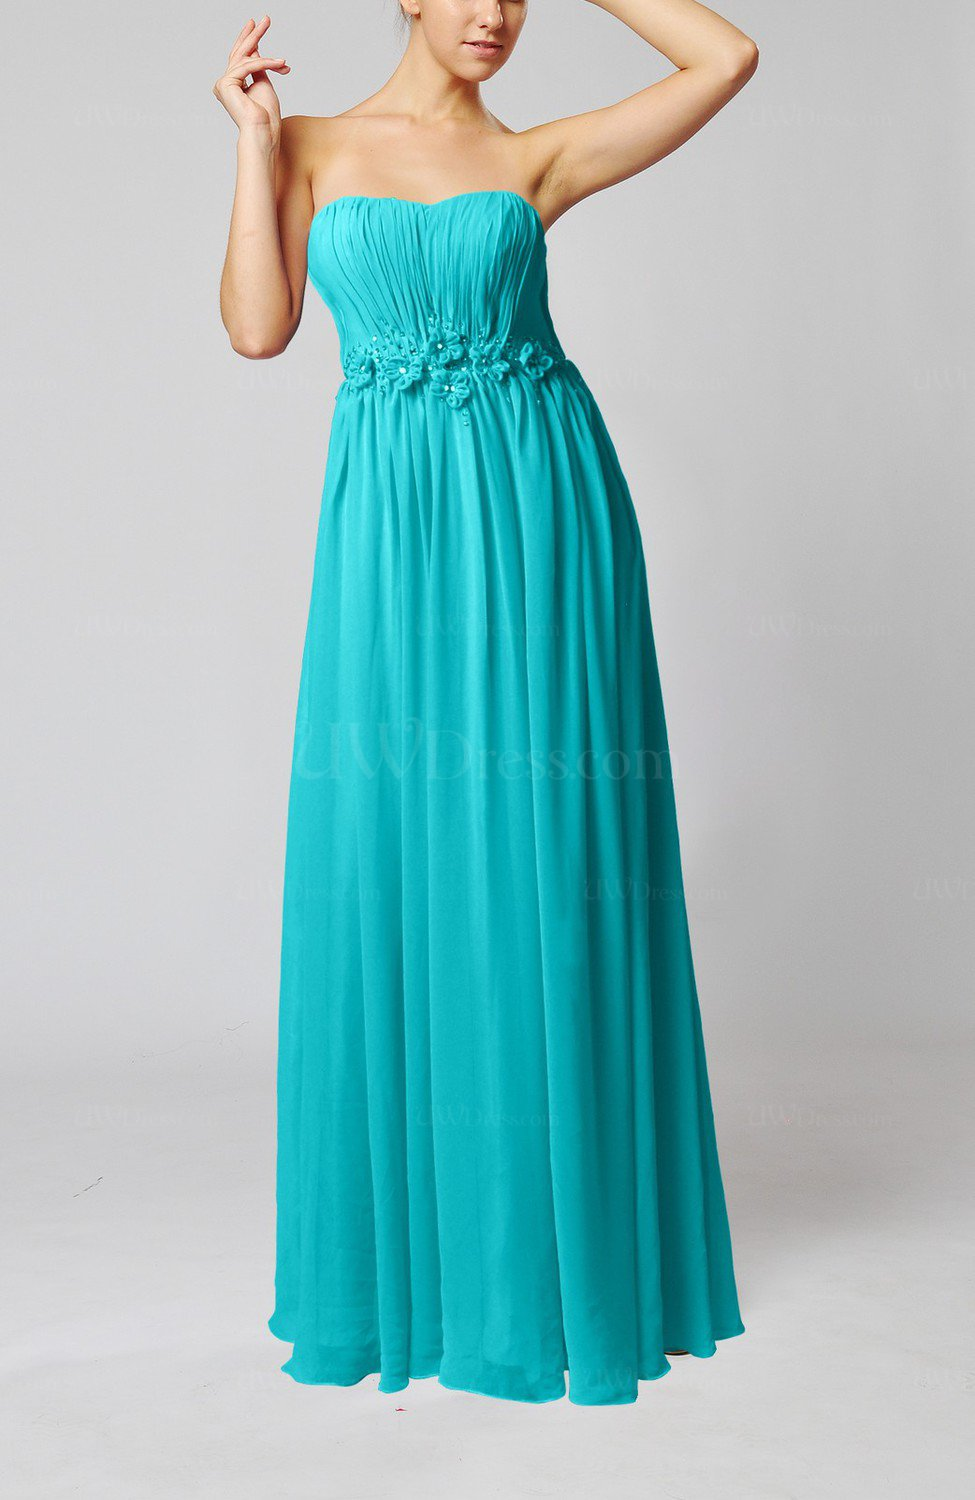 Teal Elegant Empire Strapless Floor Length Flower Evening